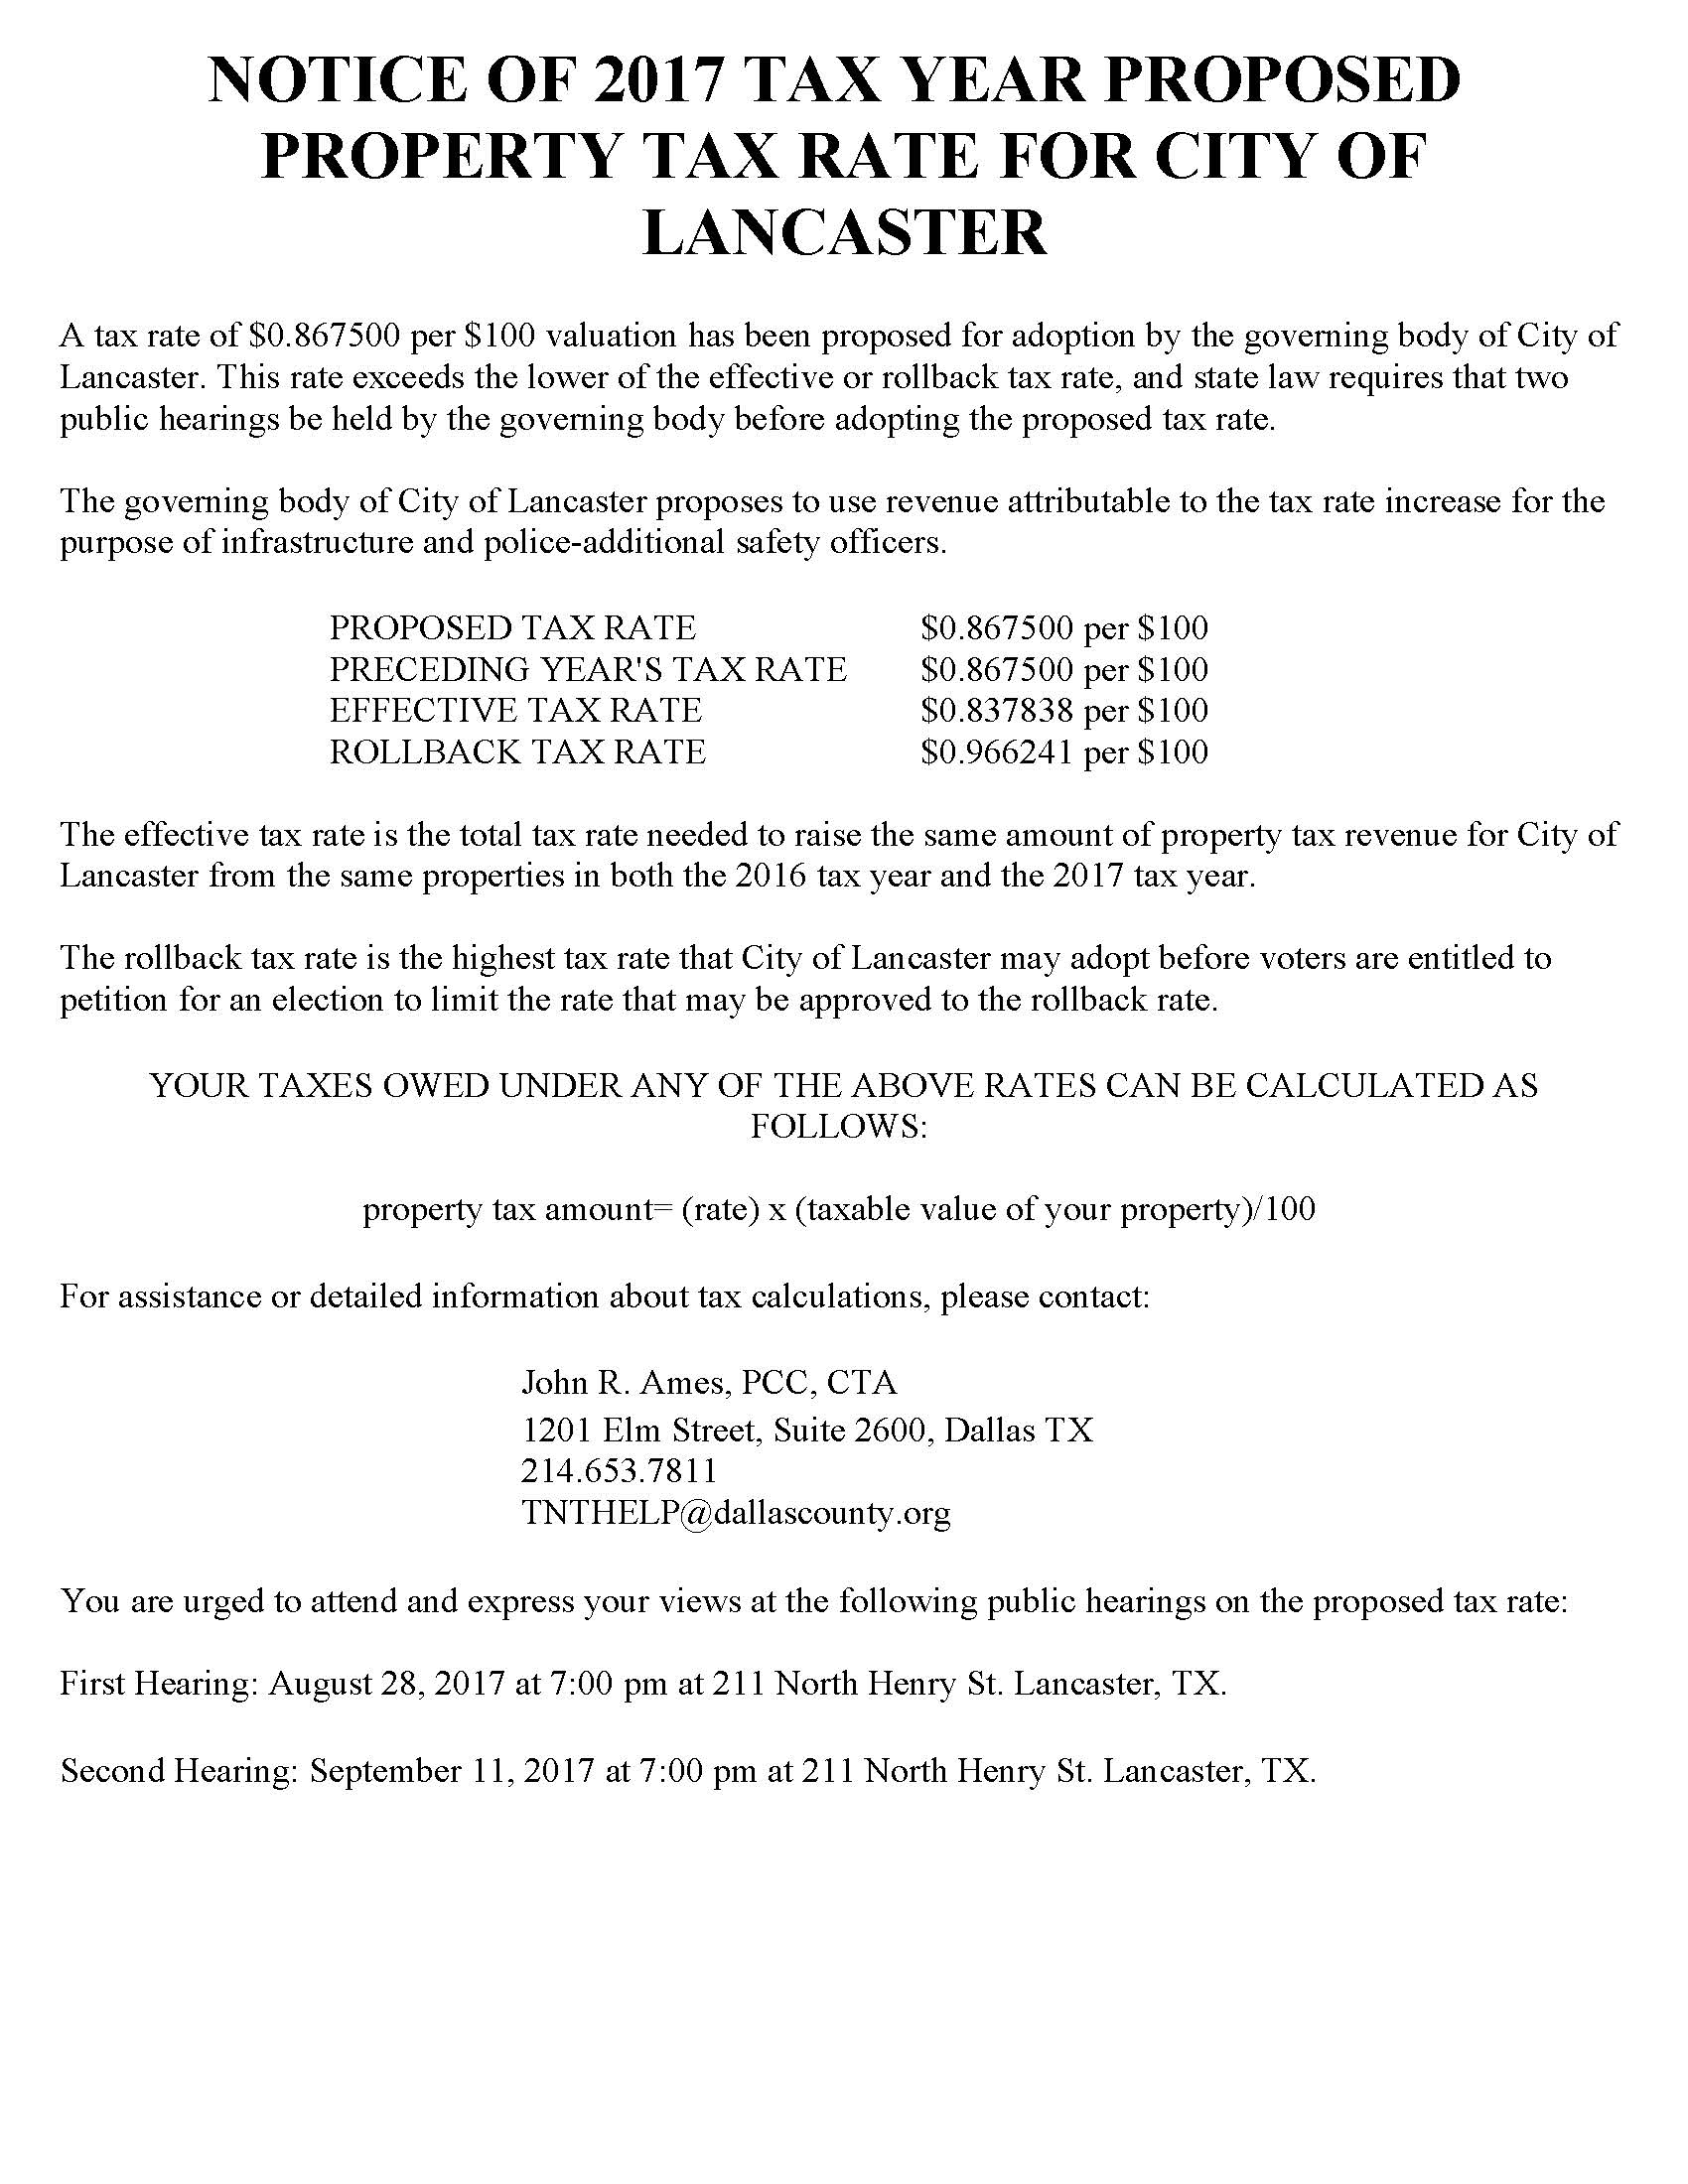 City of Lancaster 2017 Notice of Tax Rate